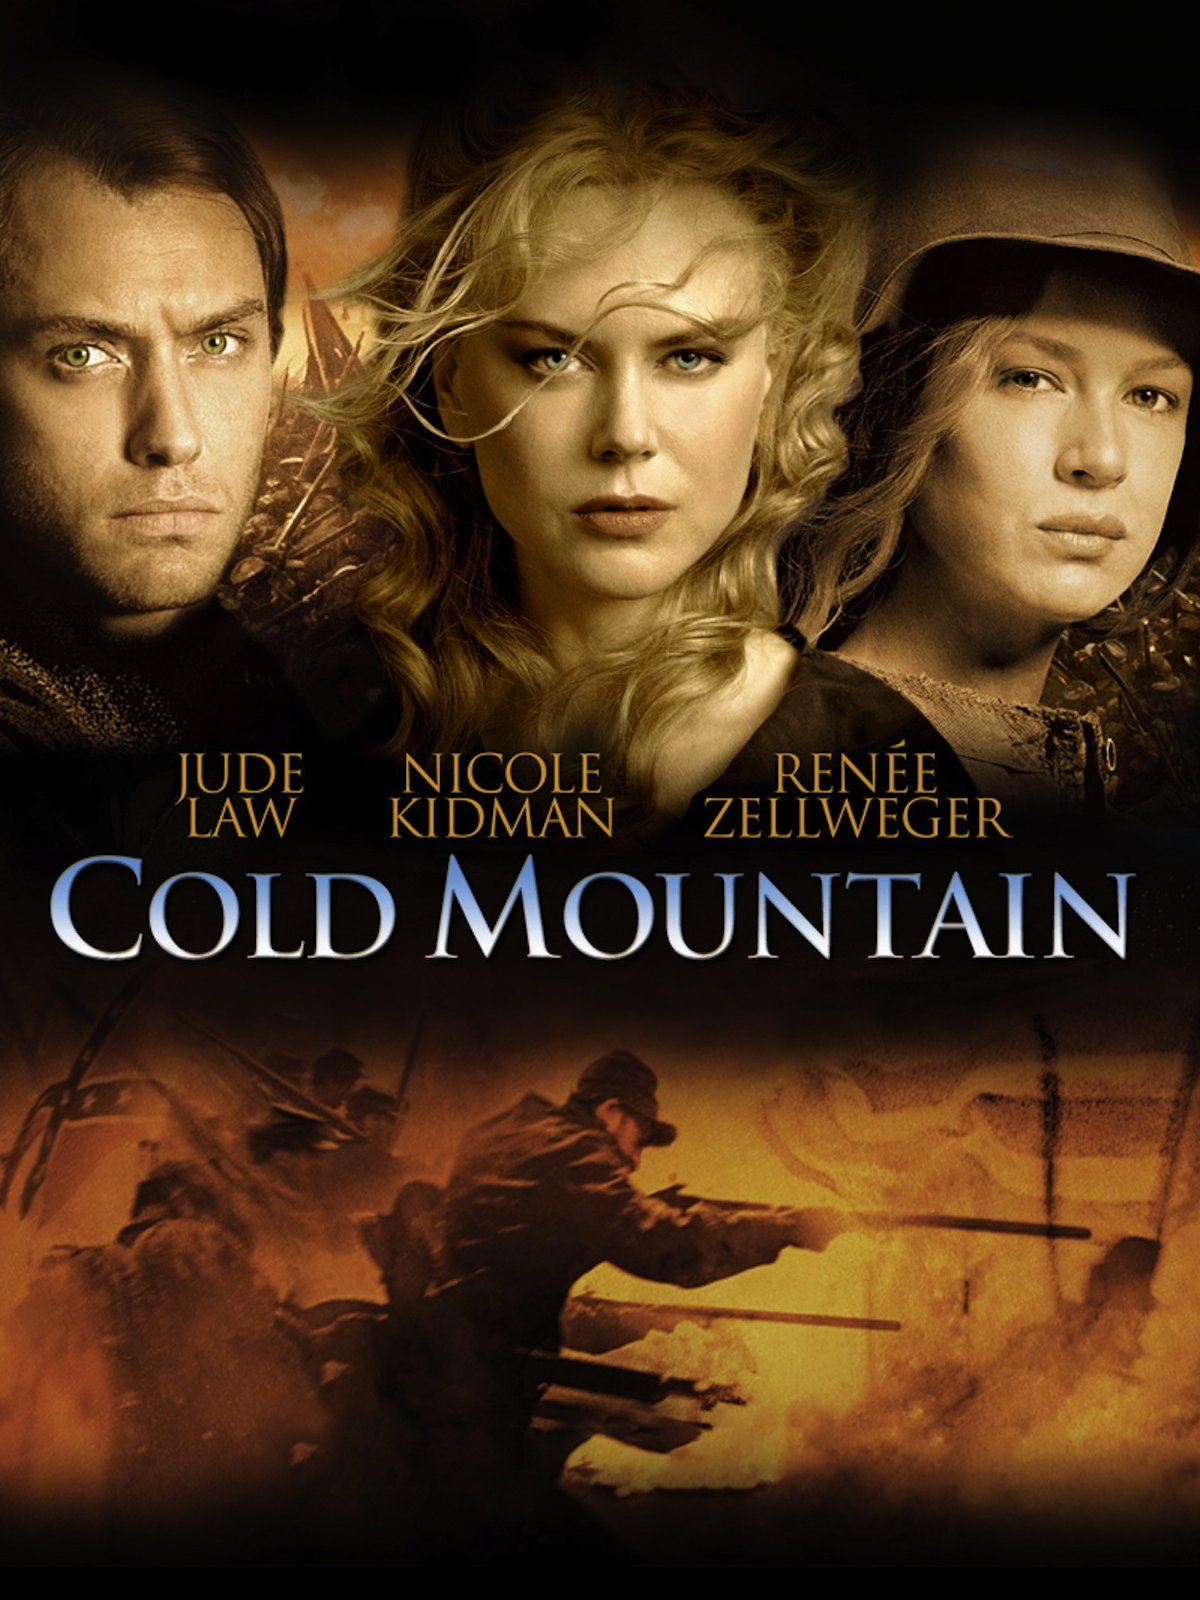 Watch Cold Mountain Prime Video